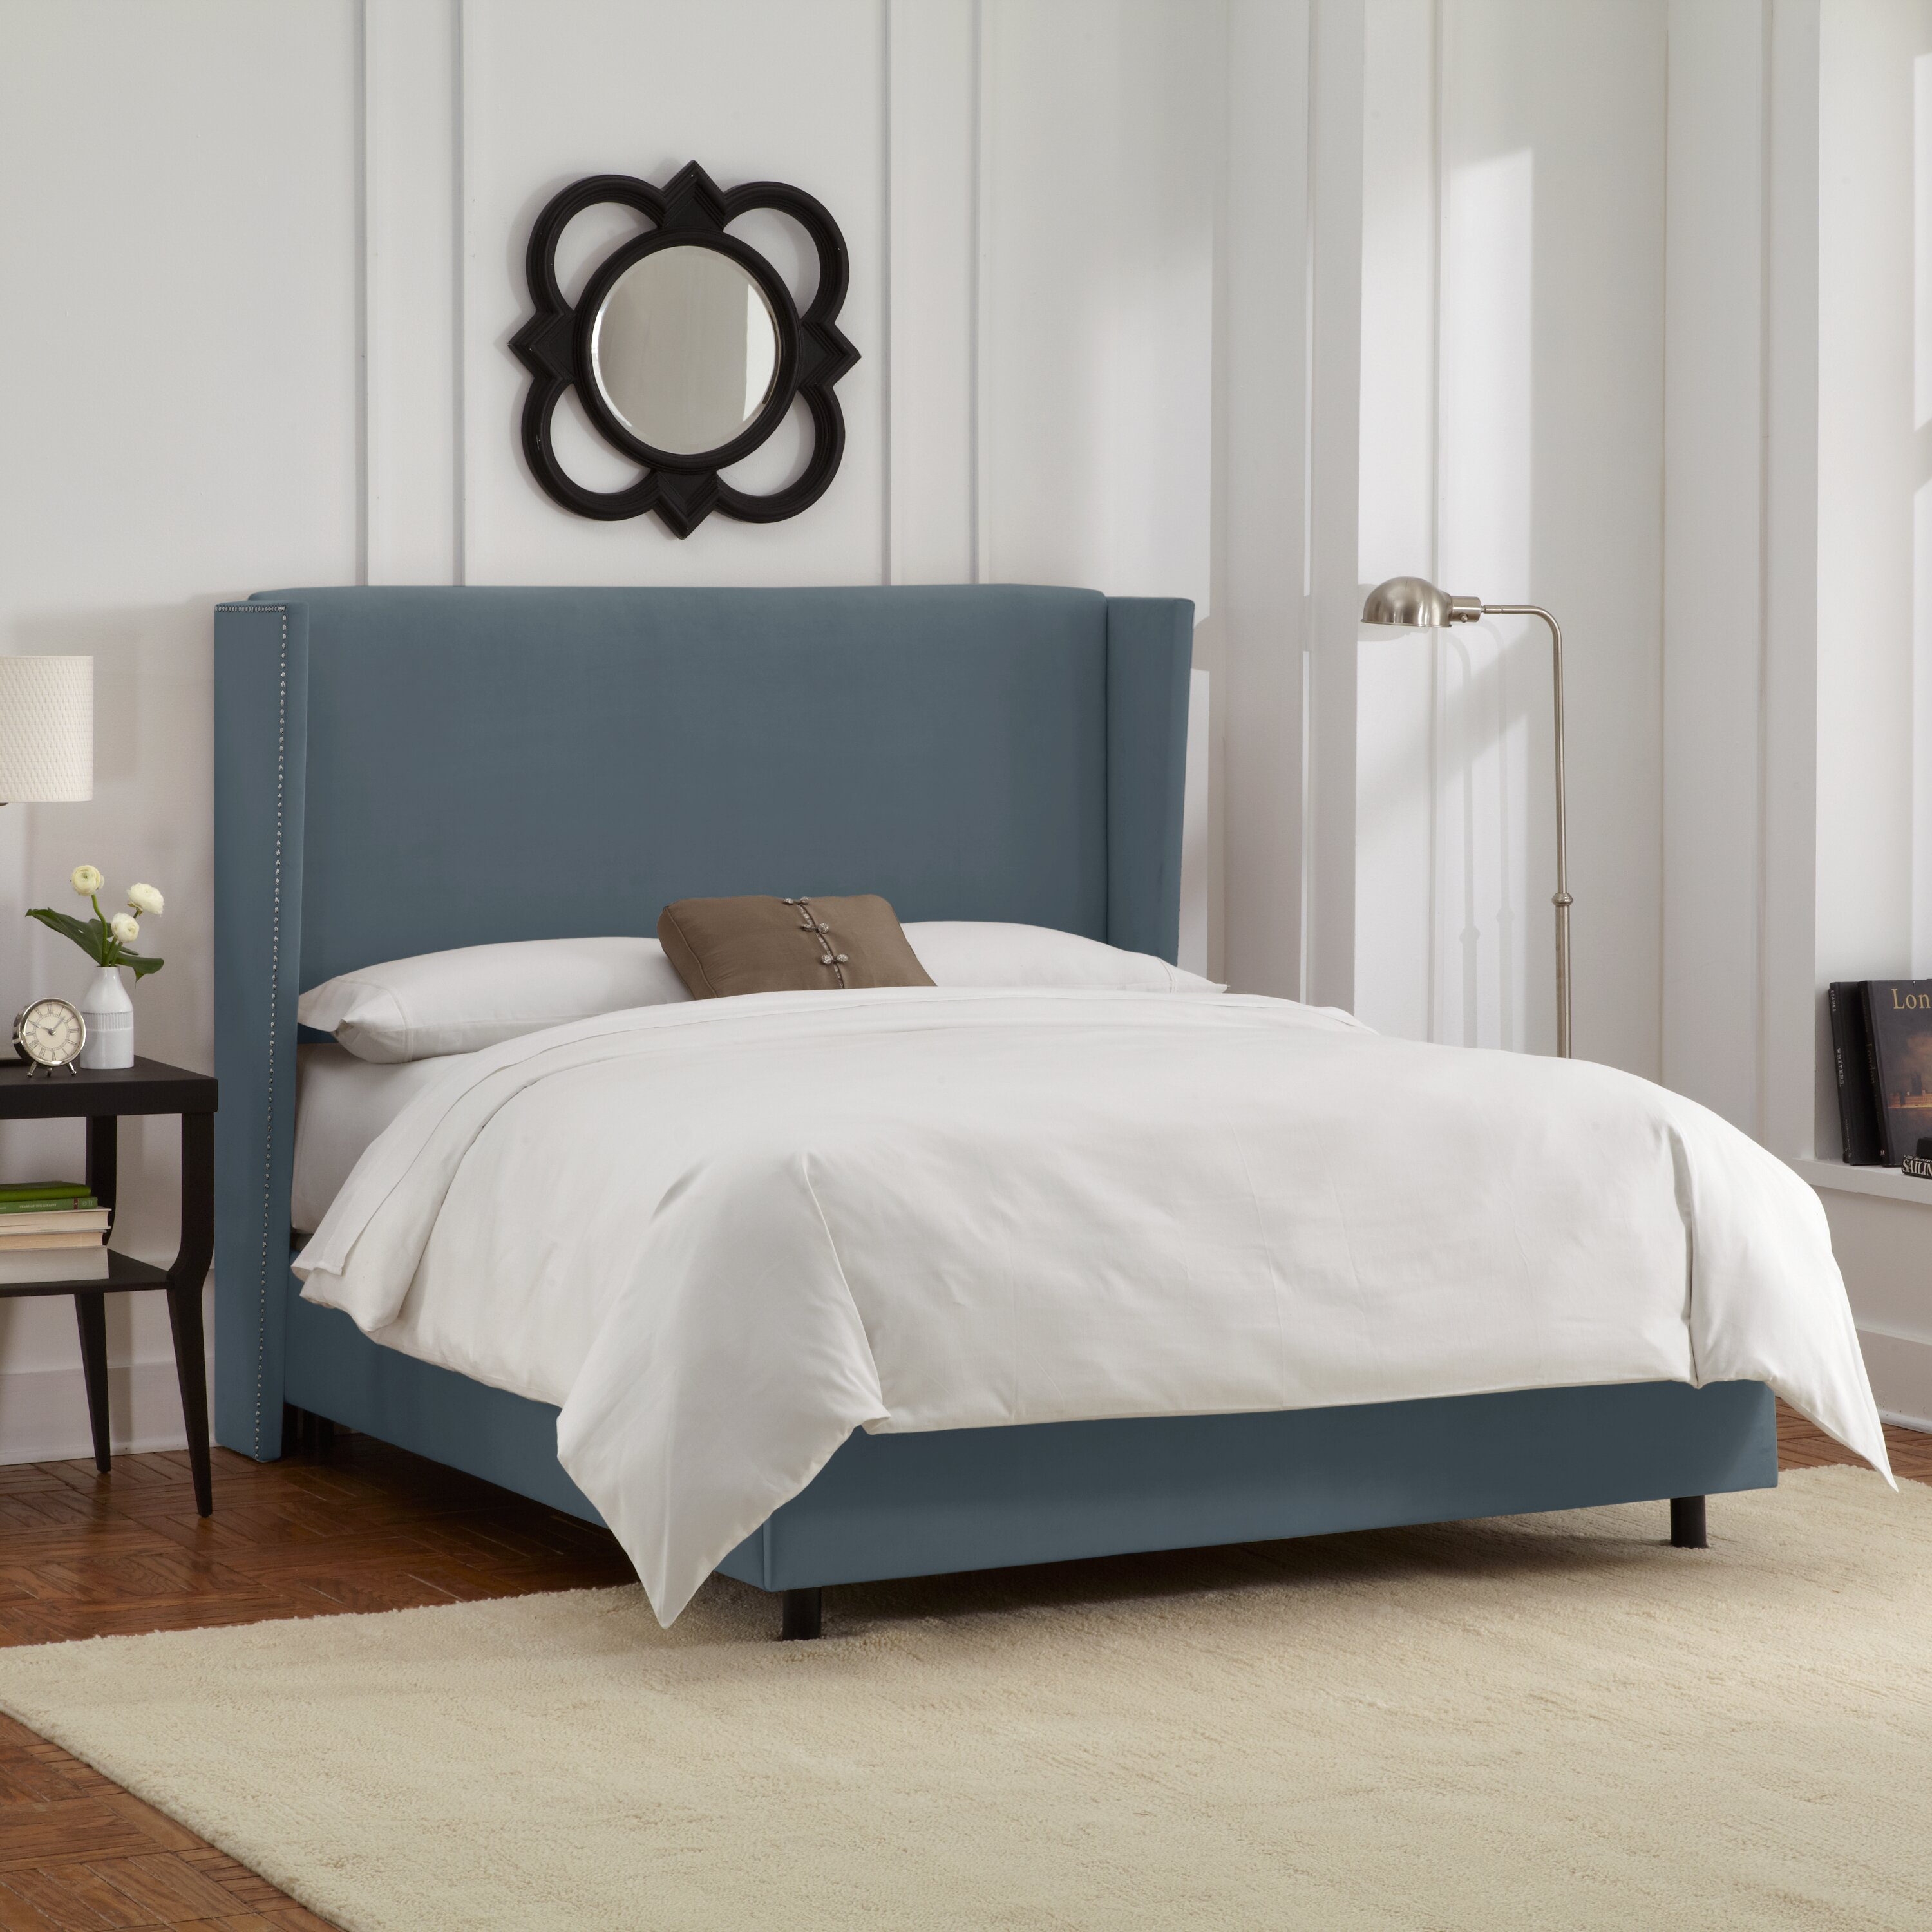 Brayden Studio Upholstered Panel Bed u0026 Reviews : Wayfair